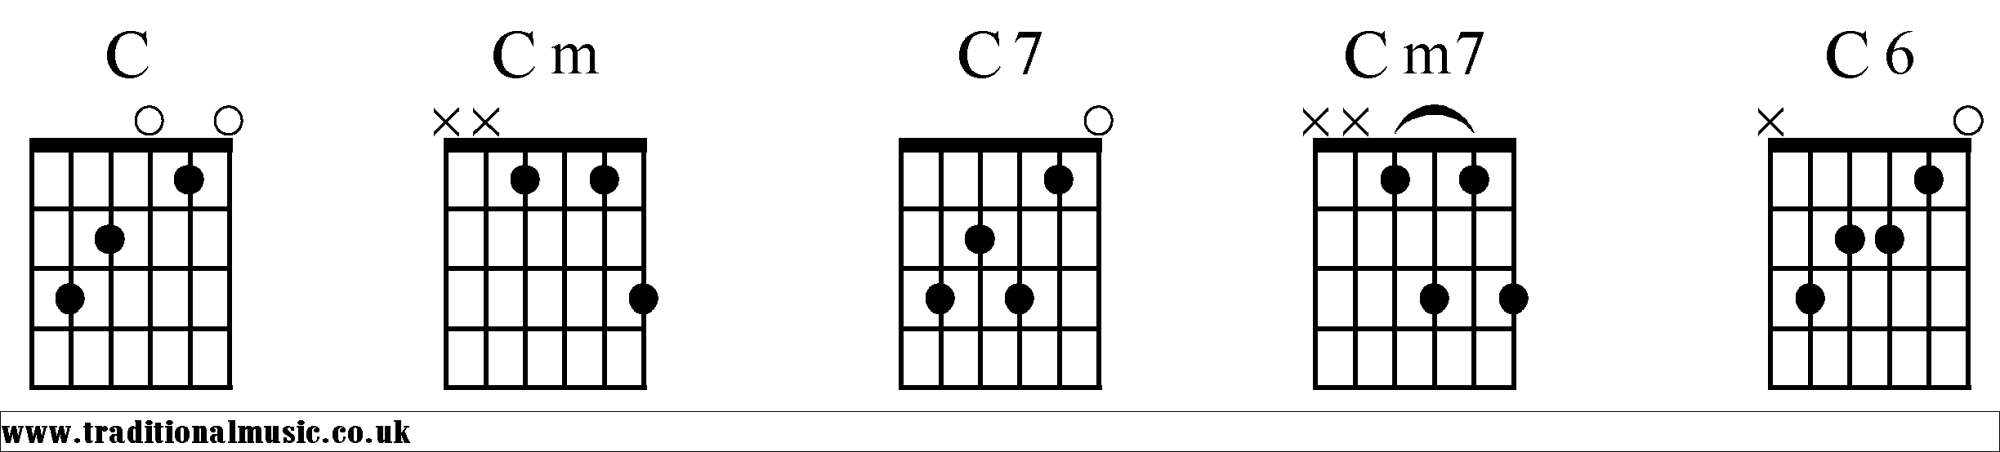 hight resolution of c chord diagram wiring diagramchord charts for guitar cc chords diagrams guitar 1